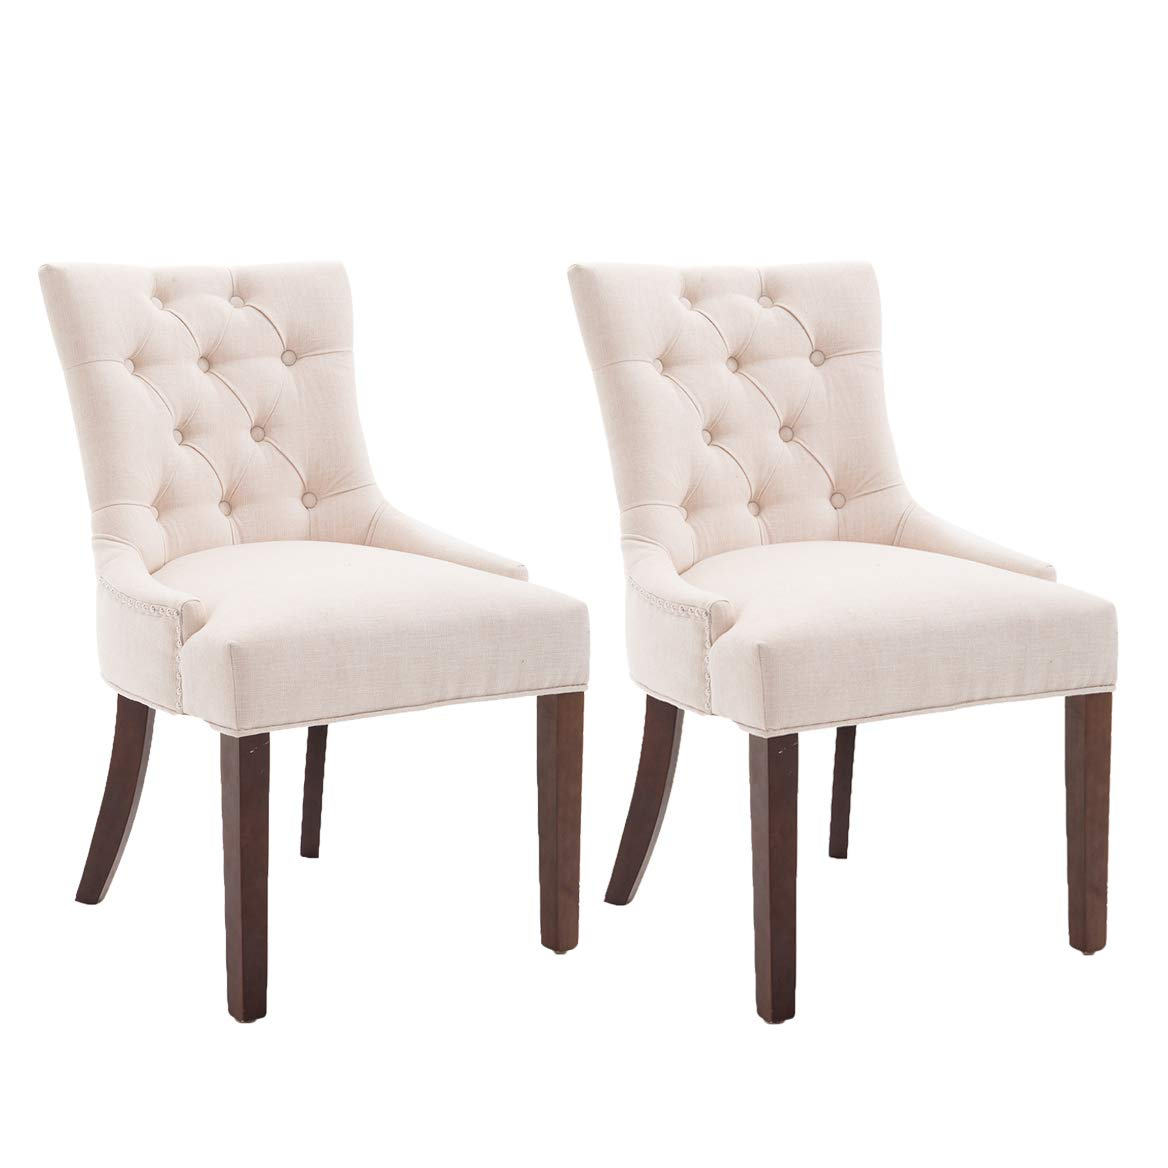 Fabric Dining Chair Upholstered Leisure Padded Chair with Armrest Per-Home, Nailed Trim, Accent Dining Chairs Set of 2(Cream)